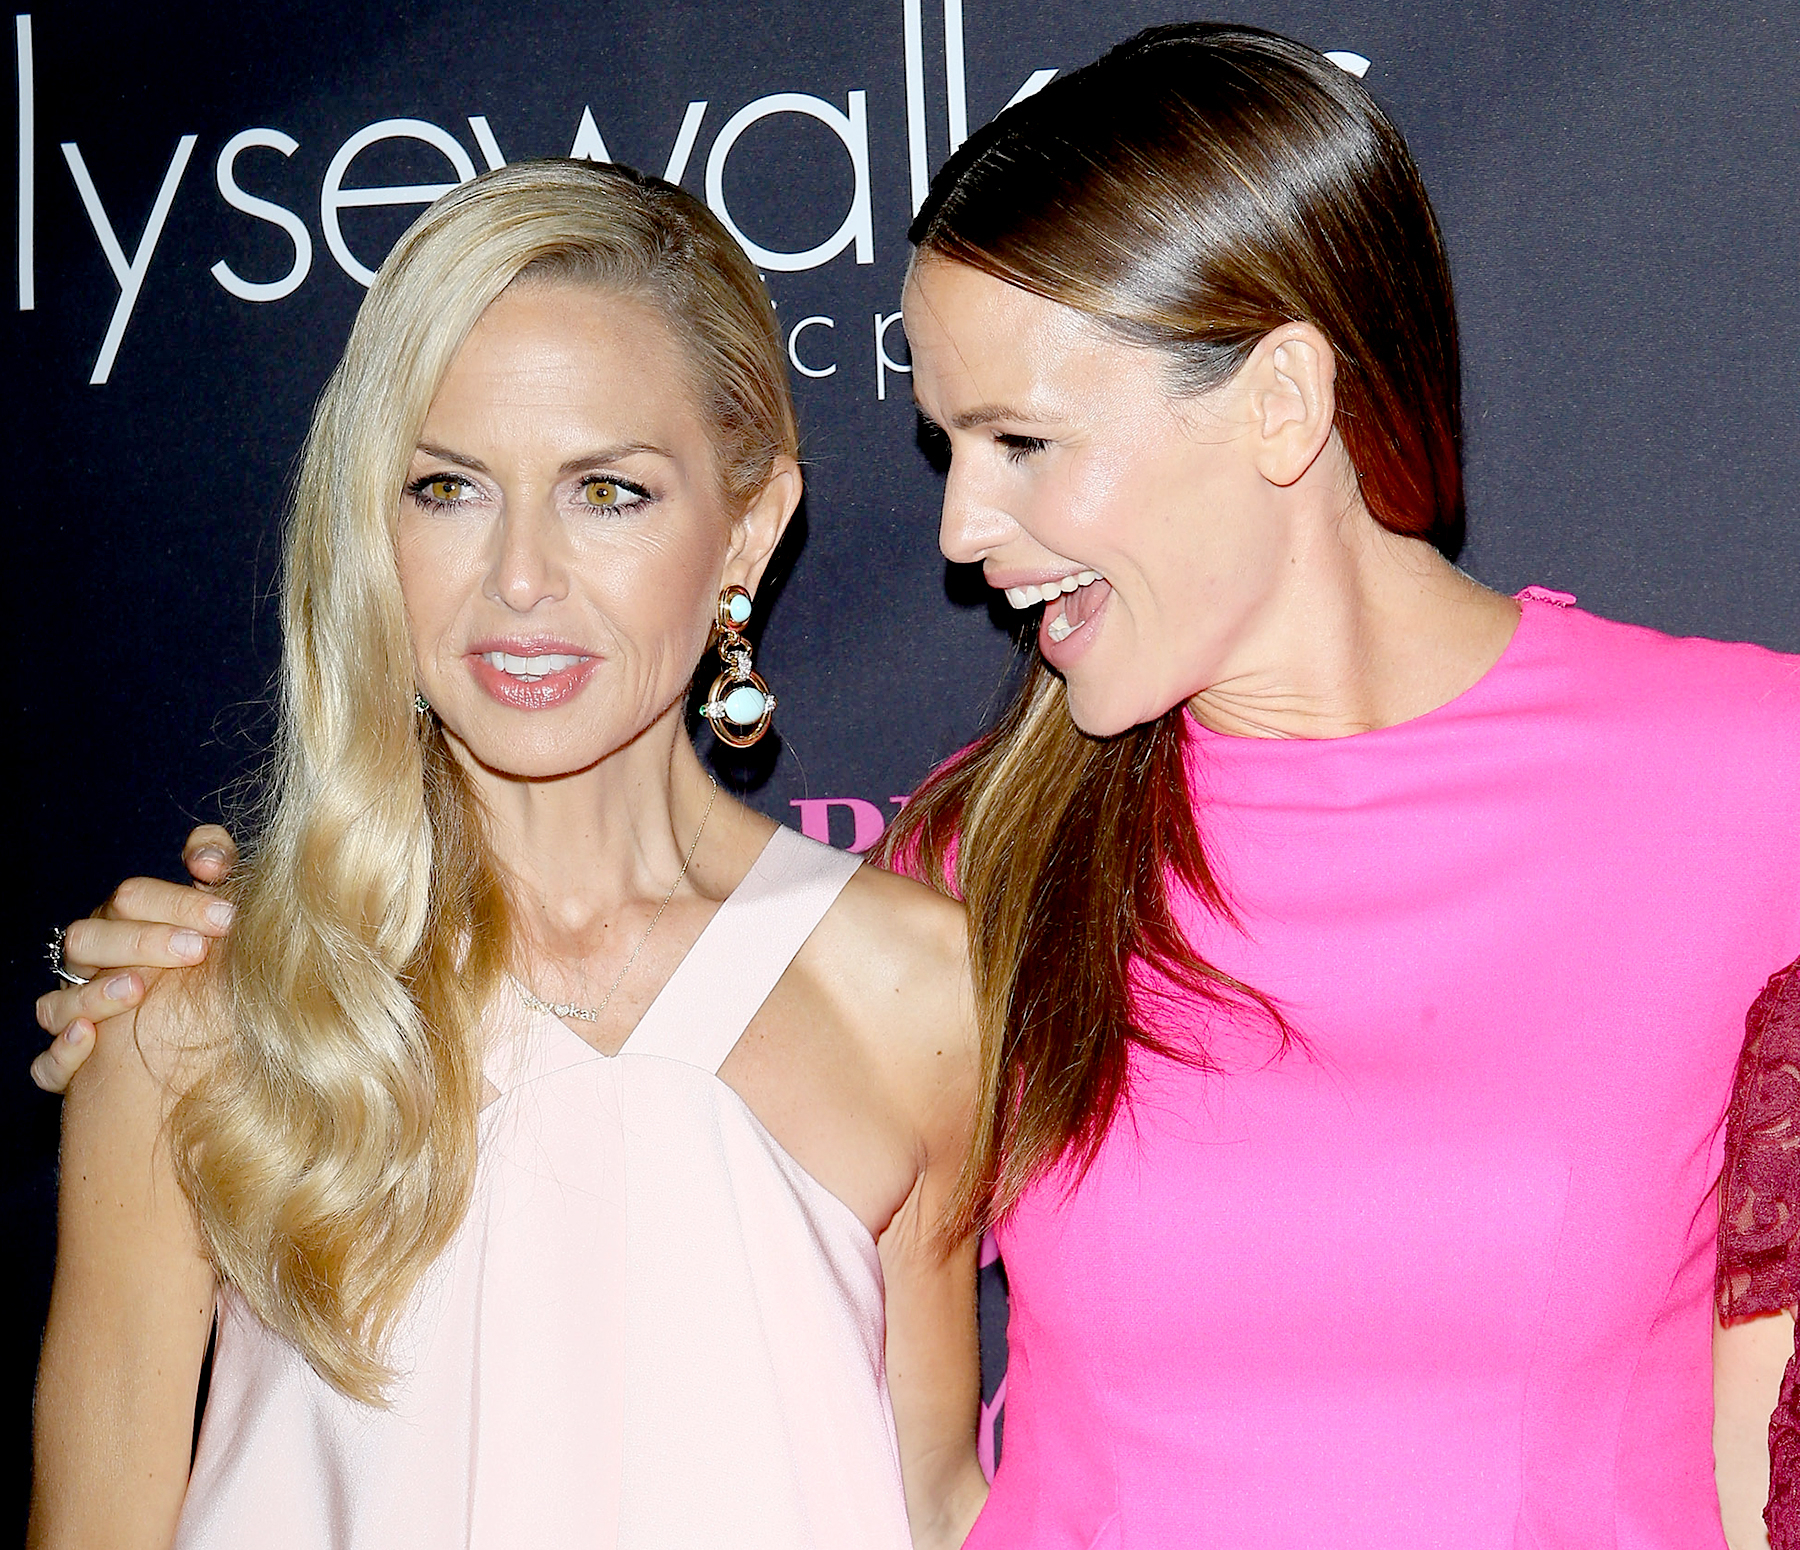 Rachel Zoe and Jennifer Garner arrive at the 10th Annual Pink Party held at Santa Monica Airport on October 18, 2014 in Santa Monica, California.